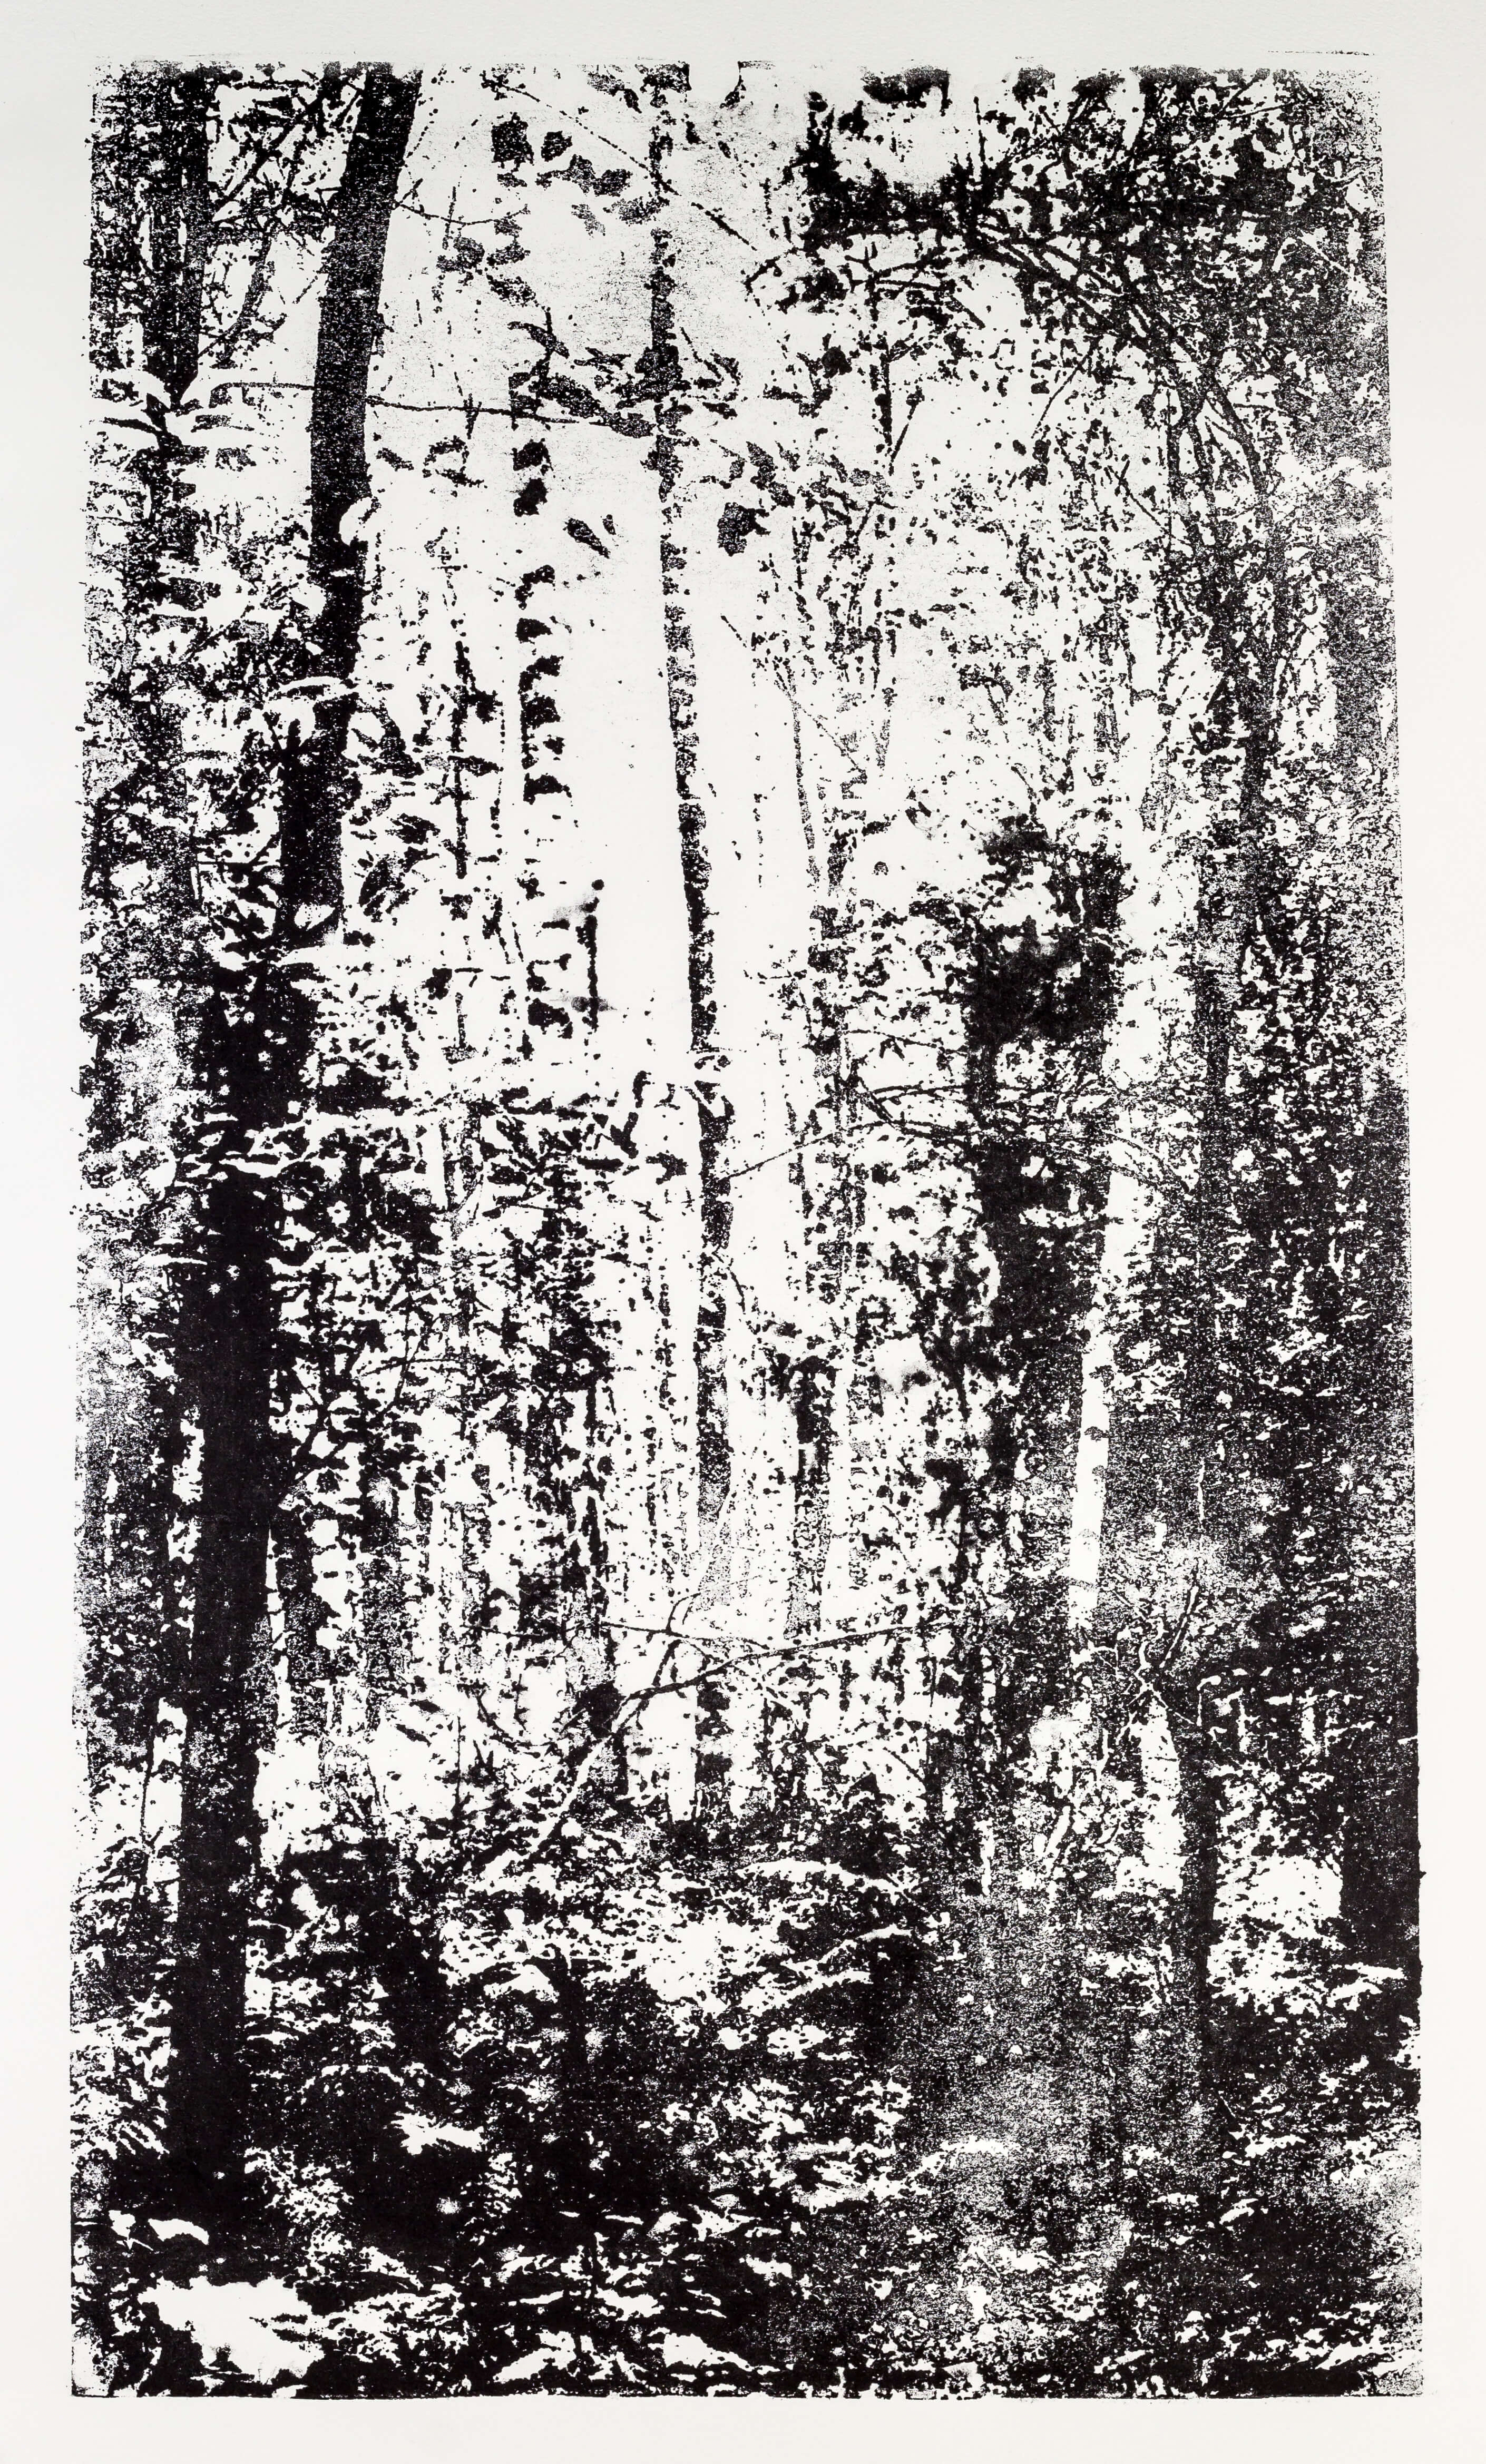 Katharina Albers, Wald XX-I, 2015, Lithographie, Unikat, 60×33 cm